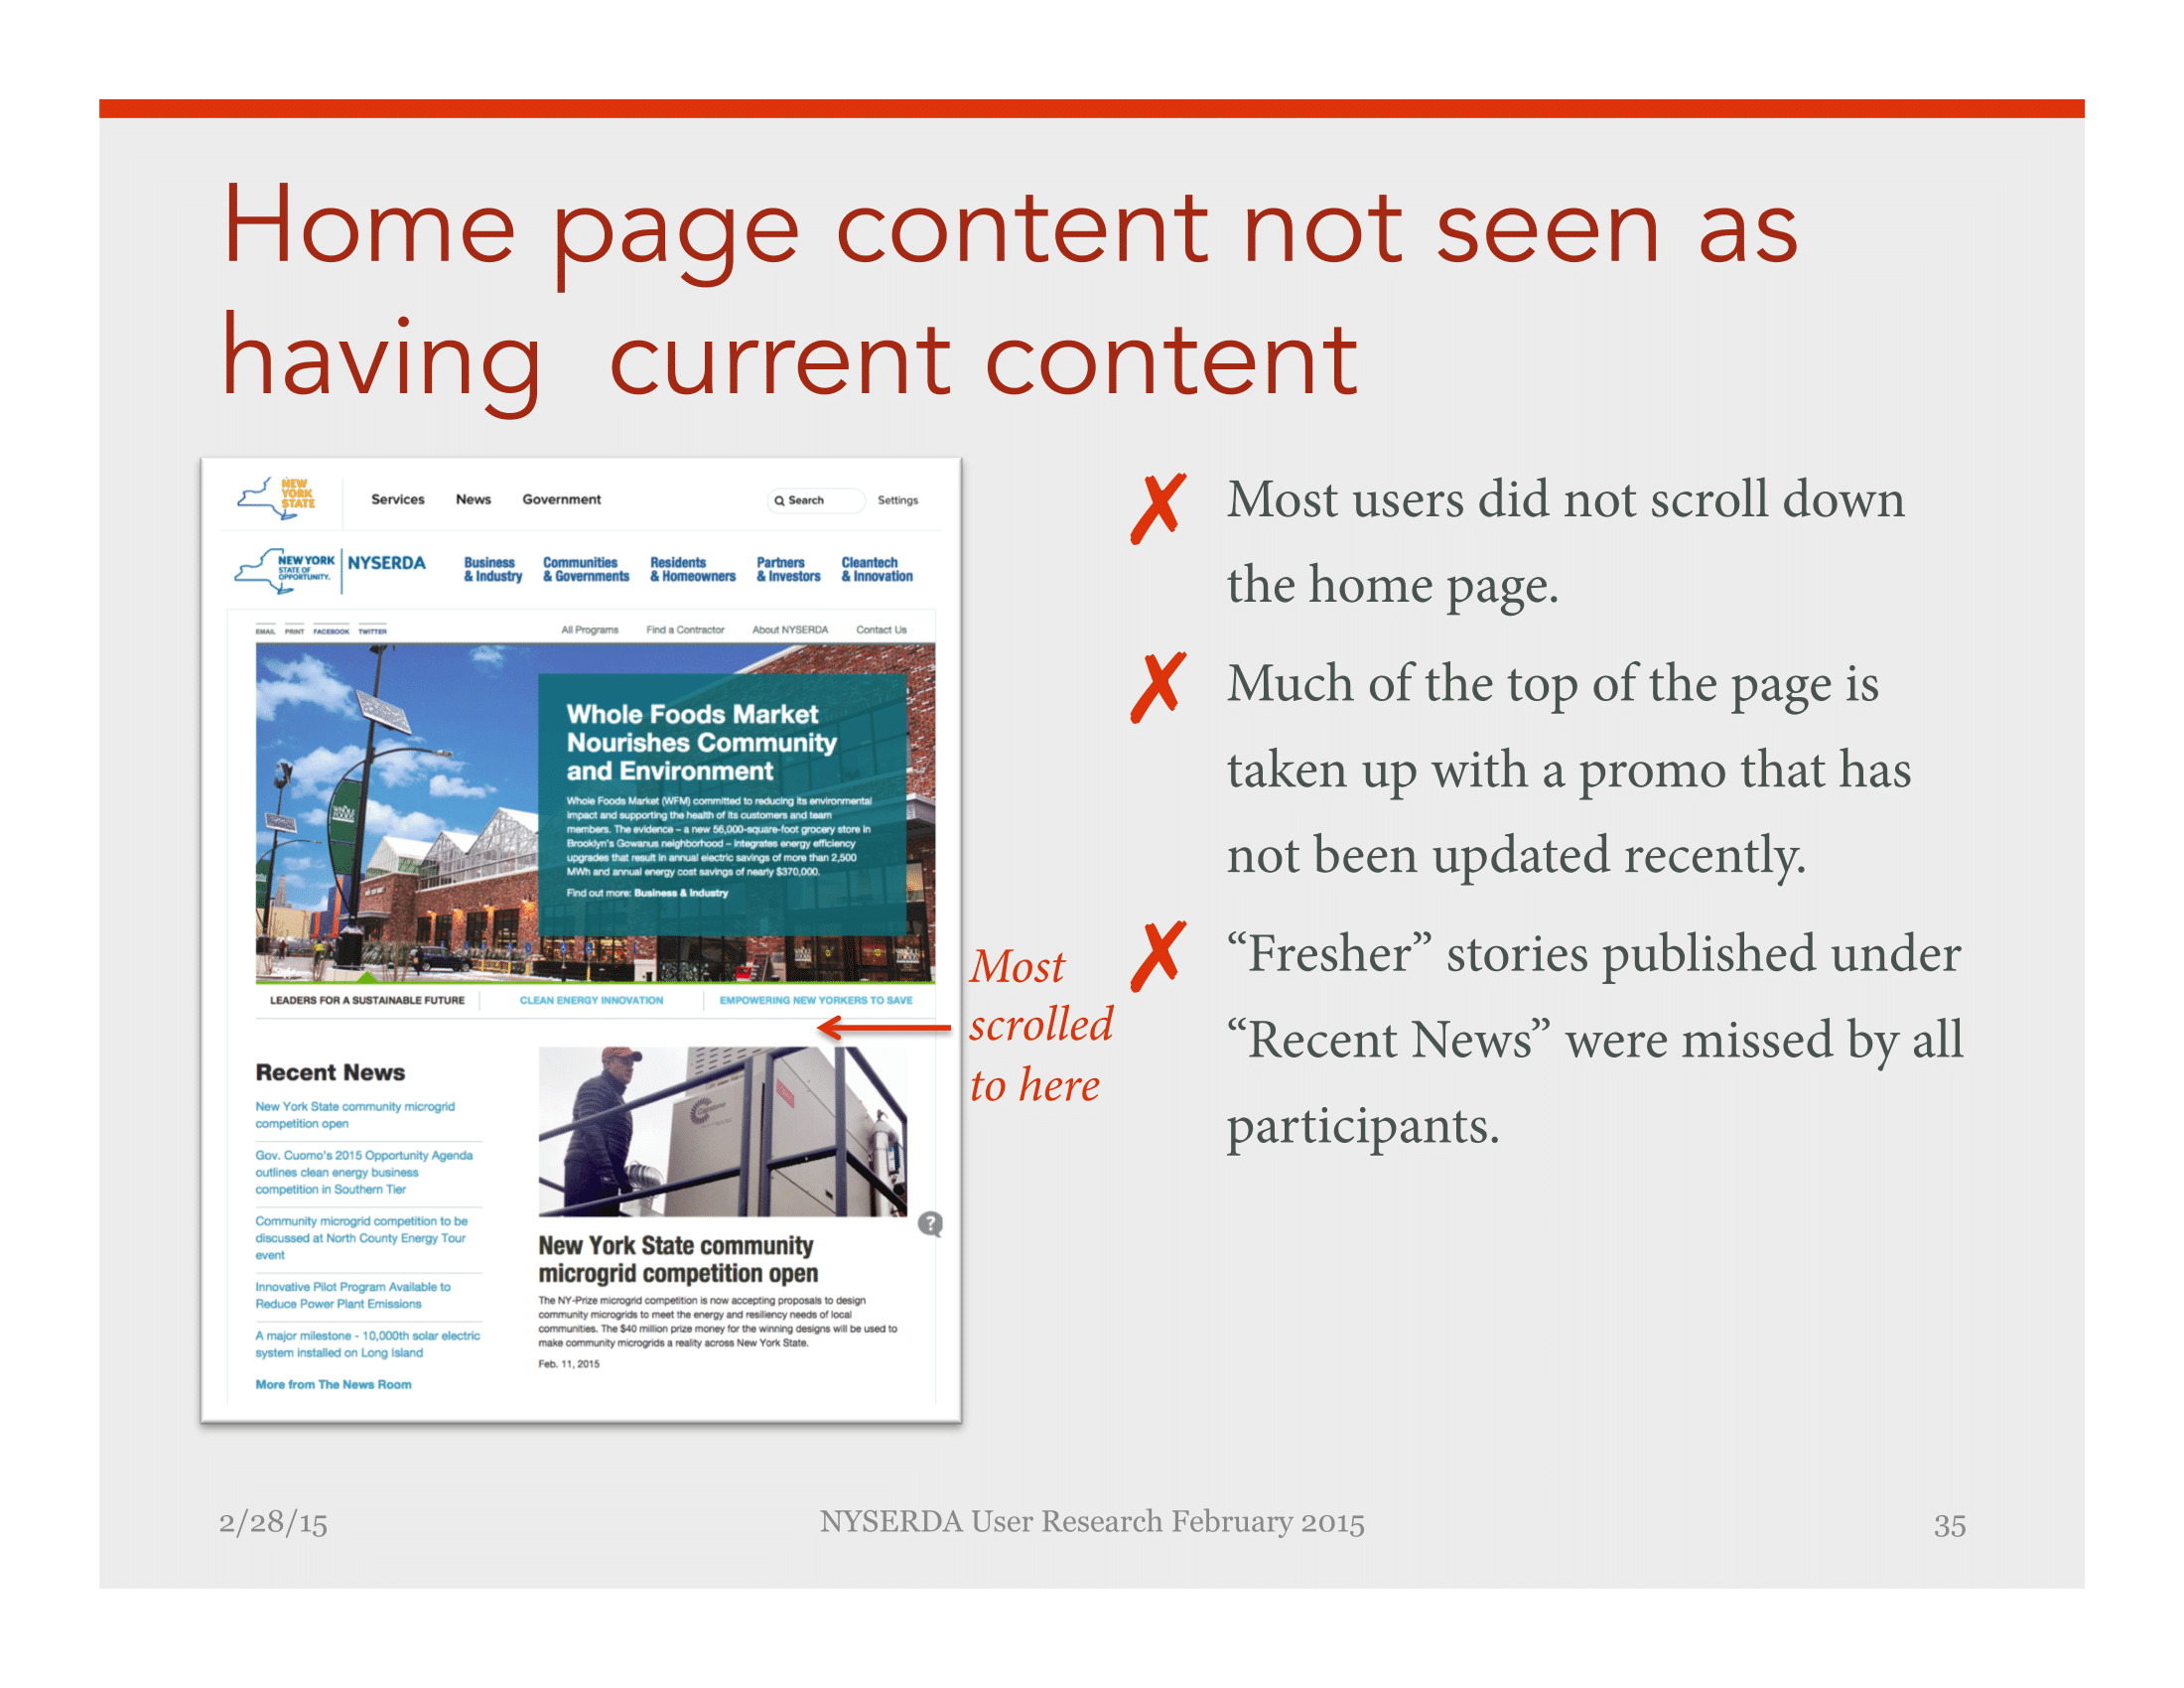 NYSERDA_Usability_Findings_Feb2015_PRESENTED 35-1.png